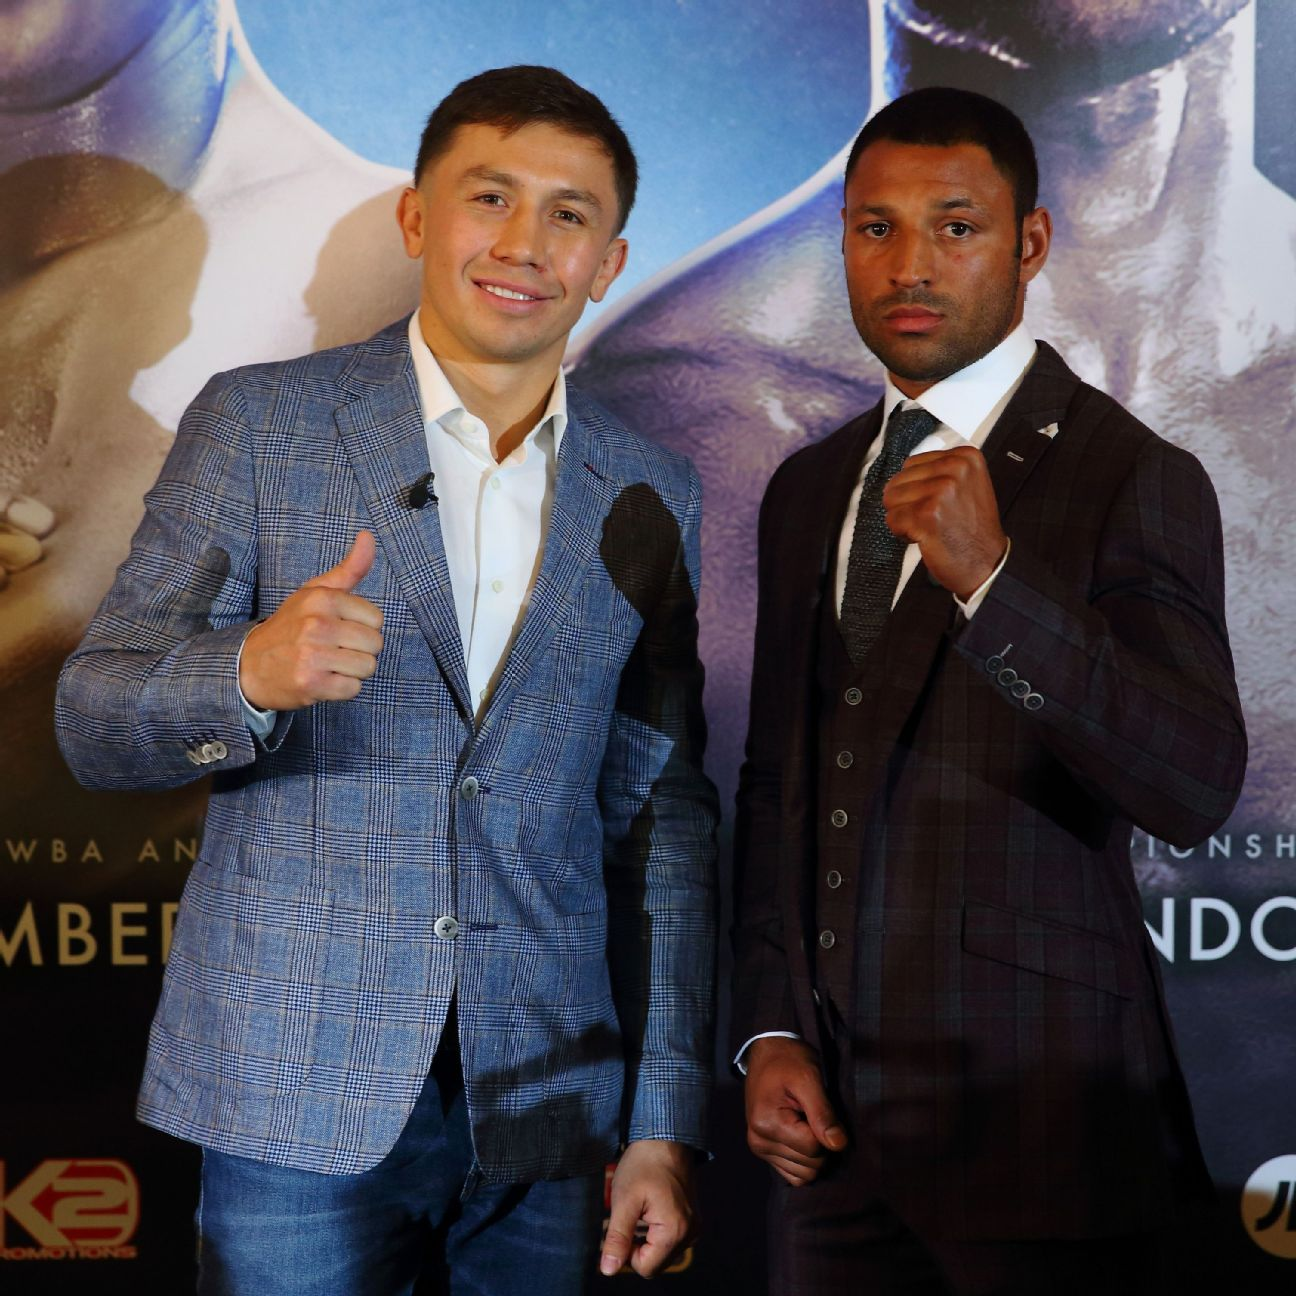 <a class='titles_link' href='view_news.php?link=http://espn.go.com/boxing/boxing/story/_/id/17372038/kell-brook-considering-ibf-welterweight-title-defence-american-errol-spence-gennady-golovkin-superfight&title=Brook considering Spence fight after GGG</a&img=http://a.espncdn.com/photo/2016/0823/r117929_1296x1296_1-1.jpg'>Brook considering Spence fight after GGG</a</a>